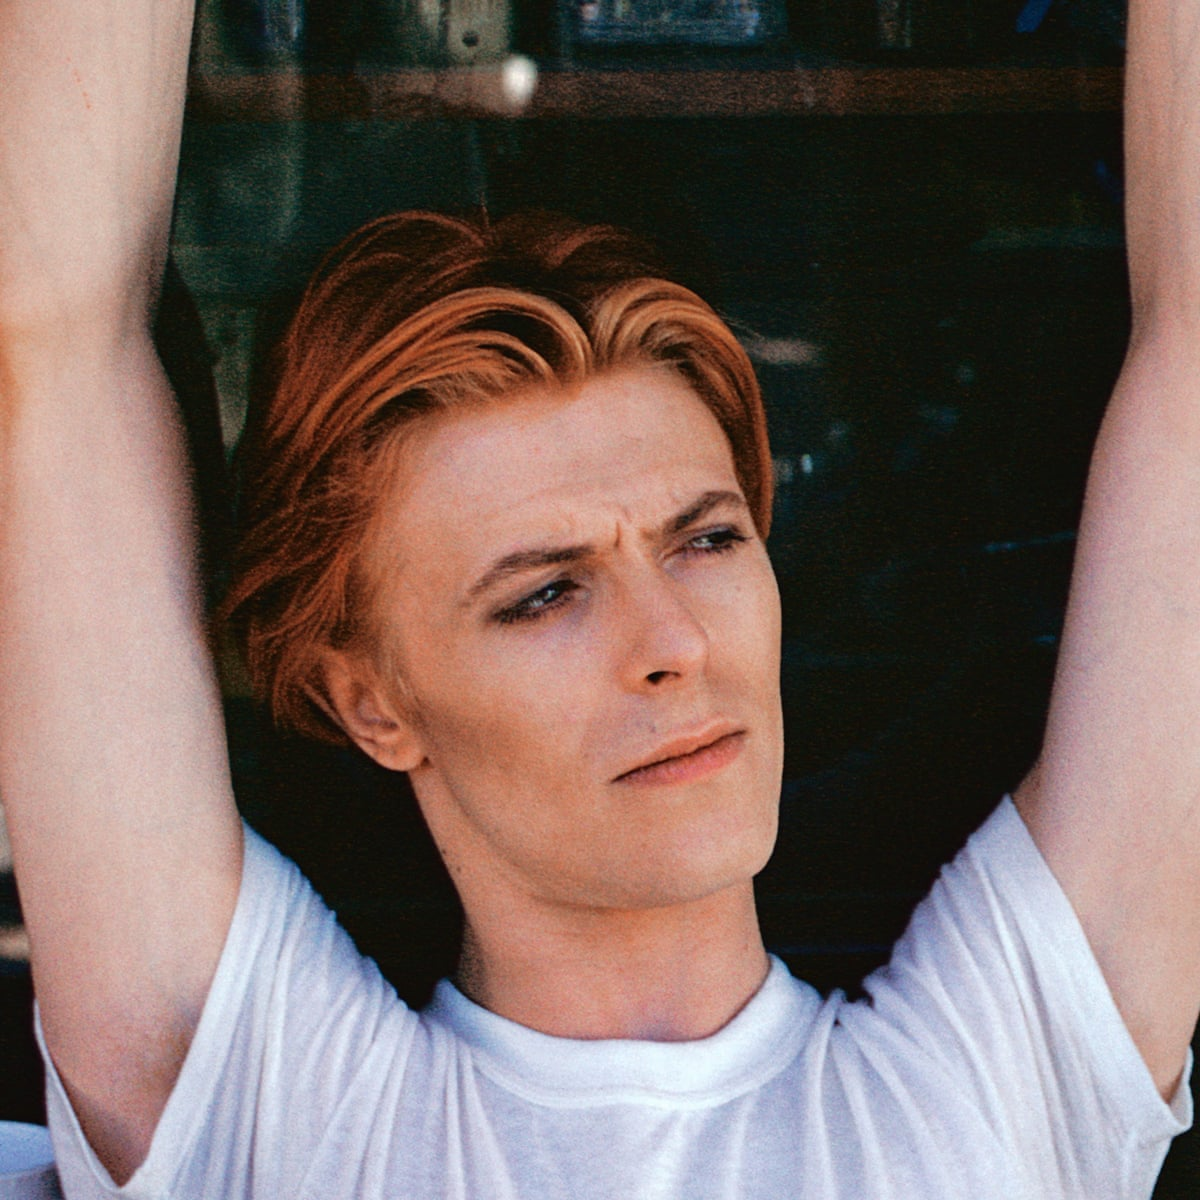 David Bowie: 1970s photos taken by friend to be auctioned in June ...